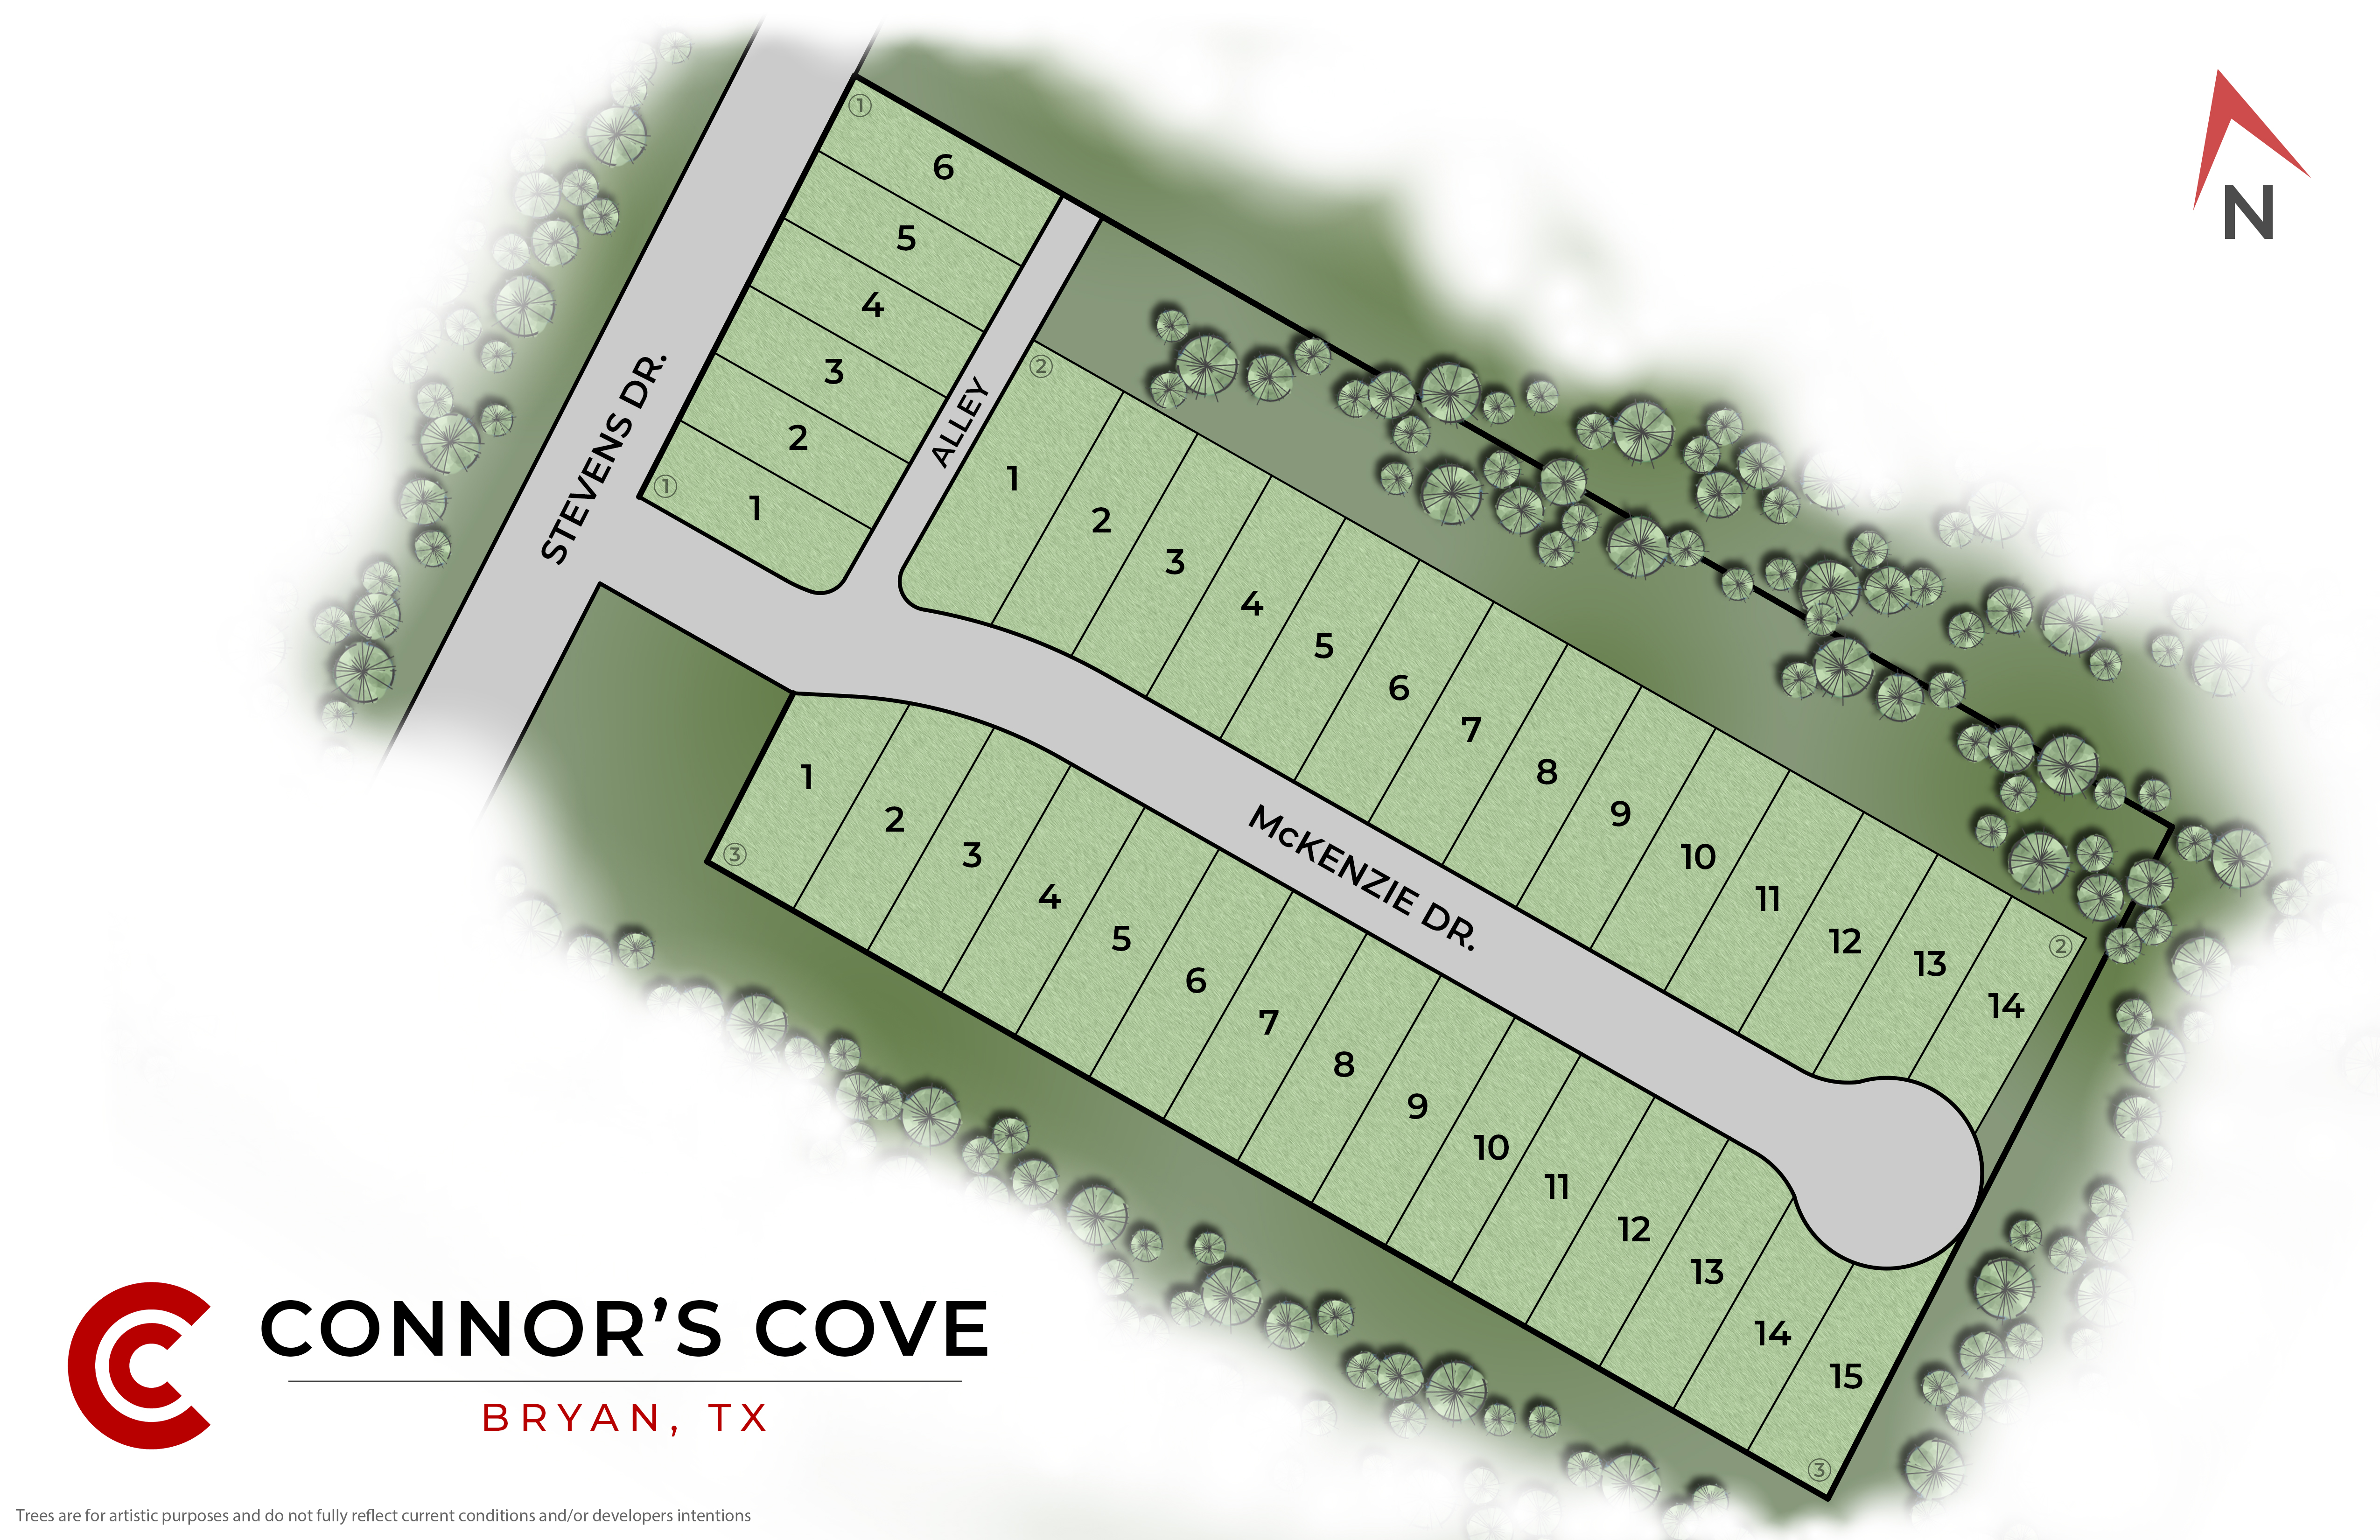 Bryan, TX Connor's Cove New Homes from Stylecraft Builders